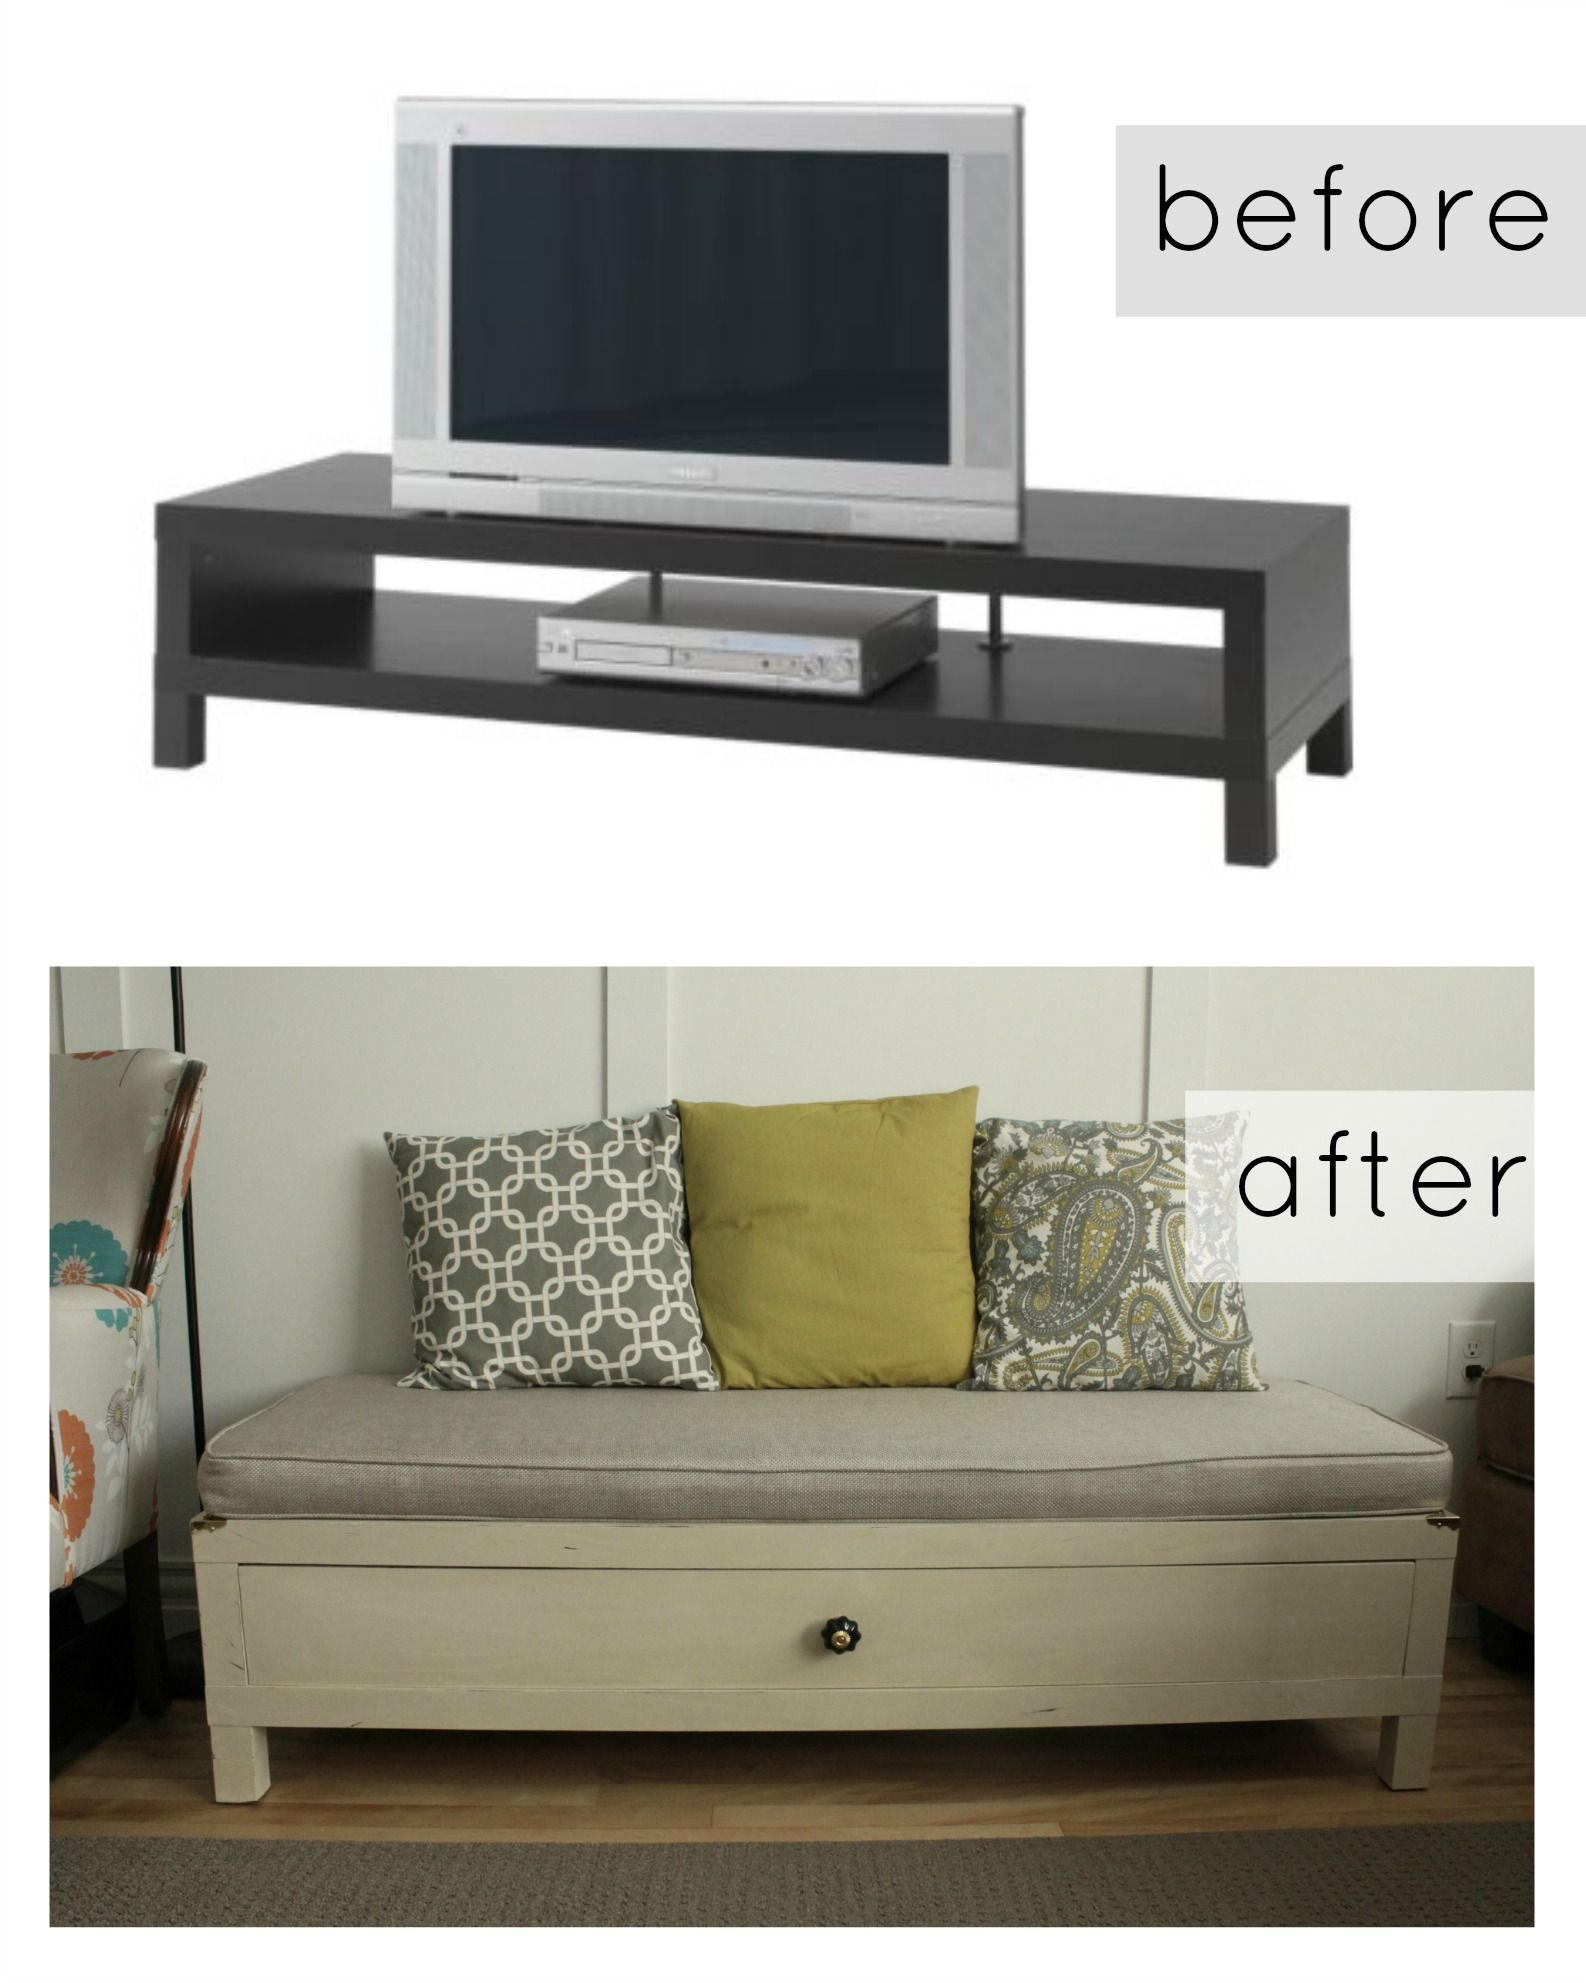 ideas of interesting and for your palquest gallery bench intended benches design storage bed bedroom with ikea property